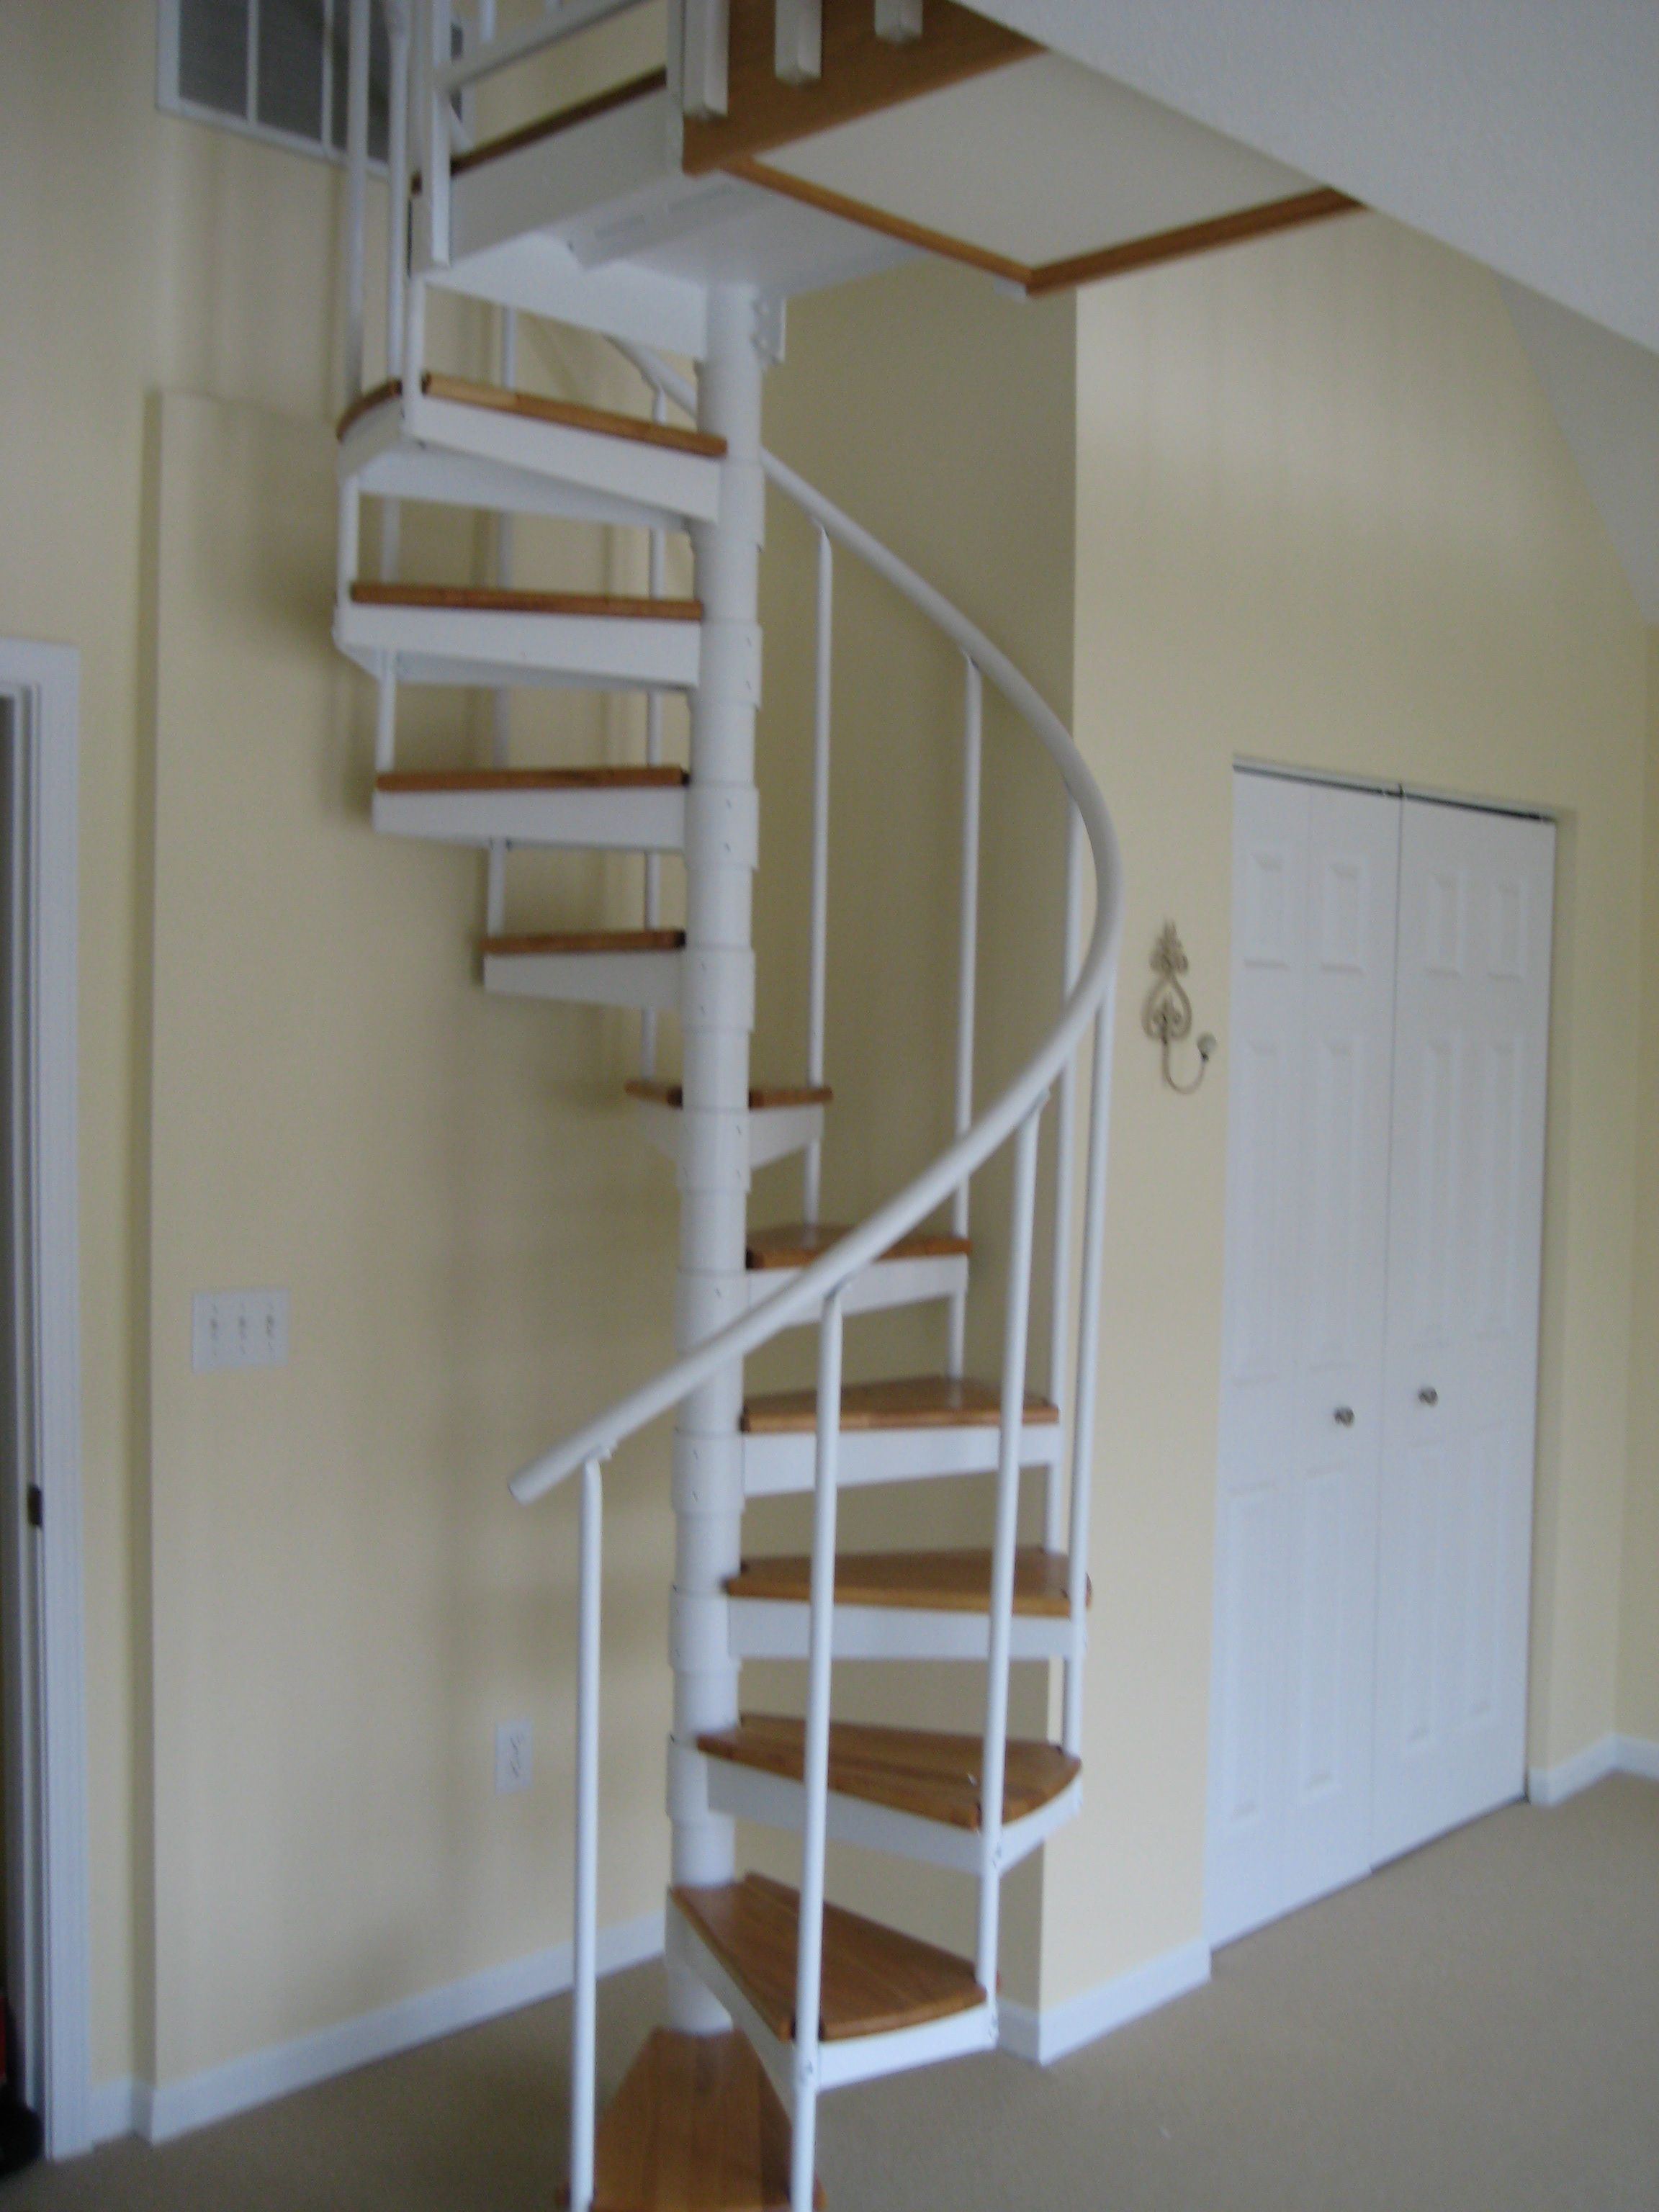 How To Remodel Your Attic Room Step By Step Includes 35 Attic   Spiral Staircase For Loft Conversion   Loft Room   Stairwell Low   Narrow   Tight Space   Step By Step